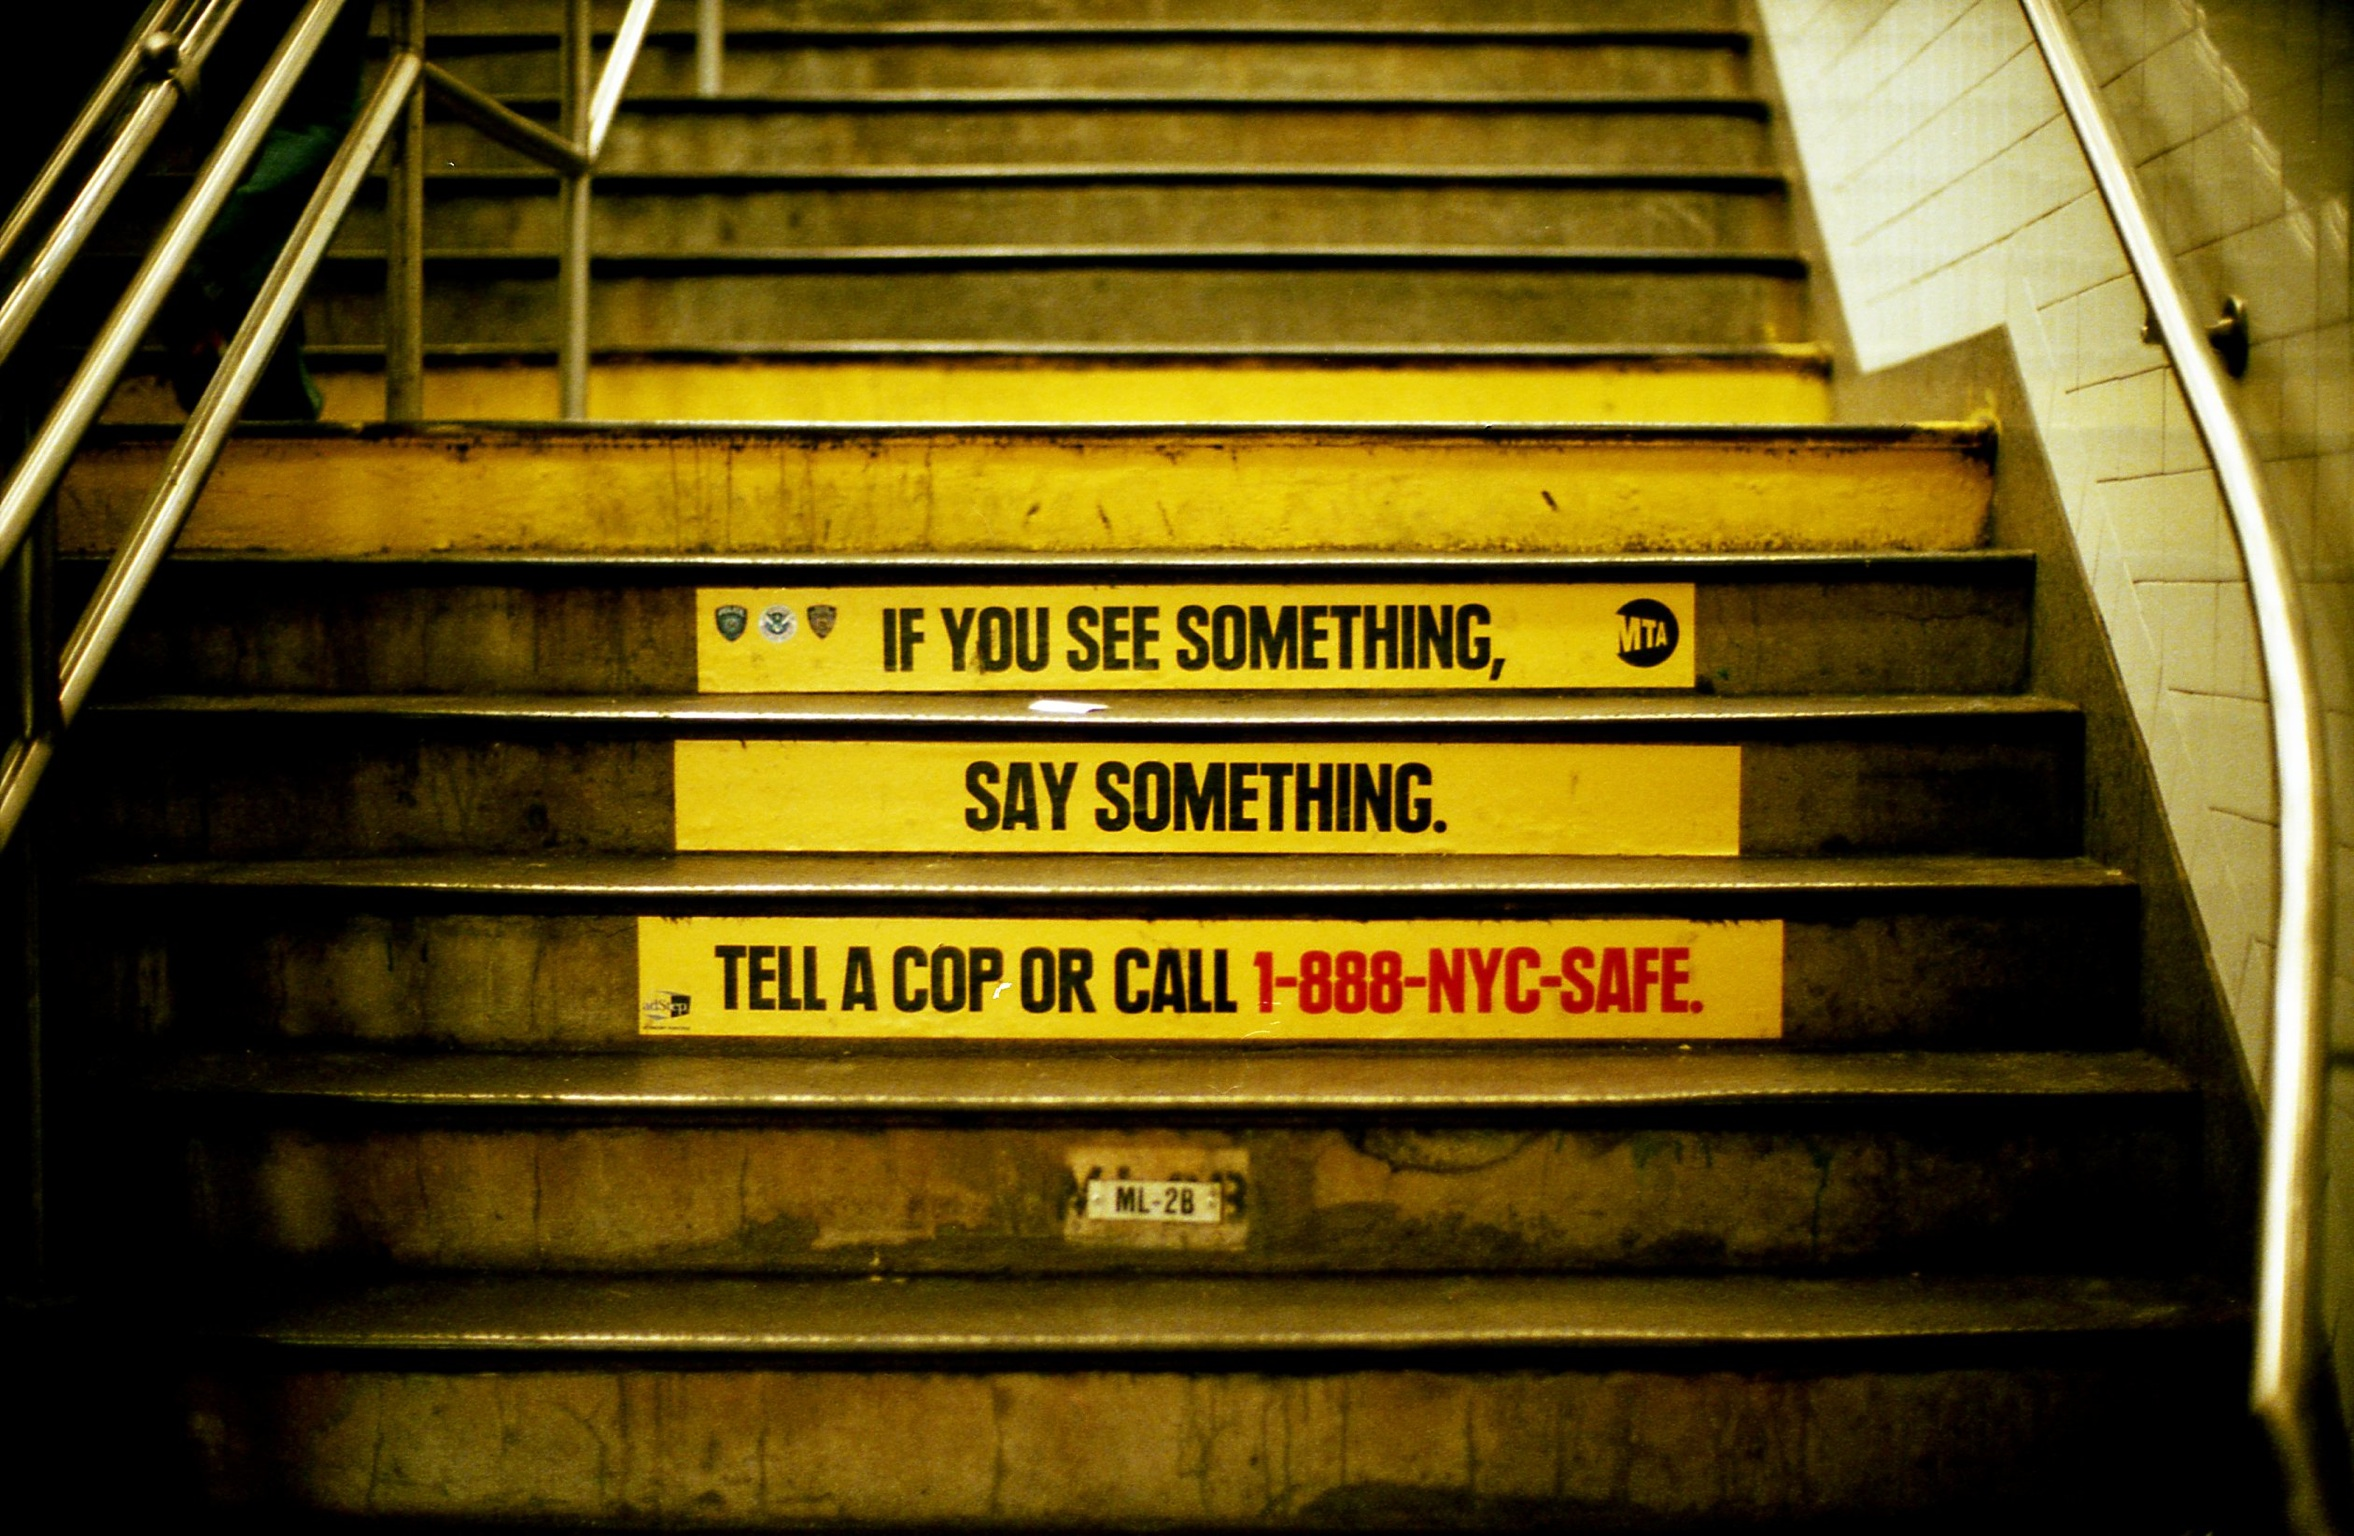 If you see something say something.